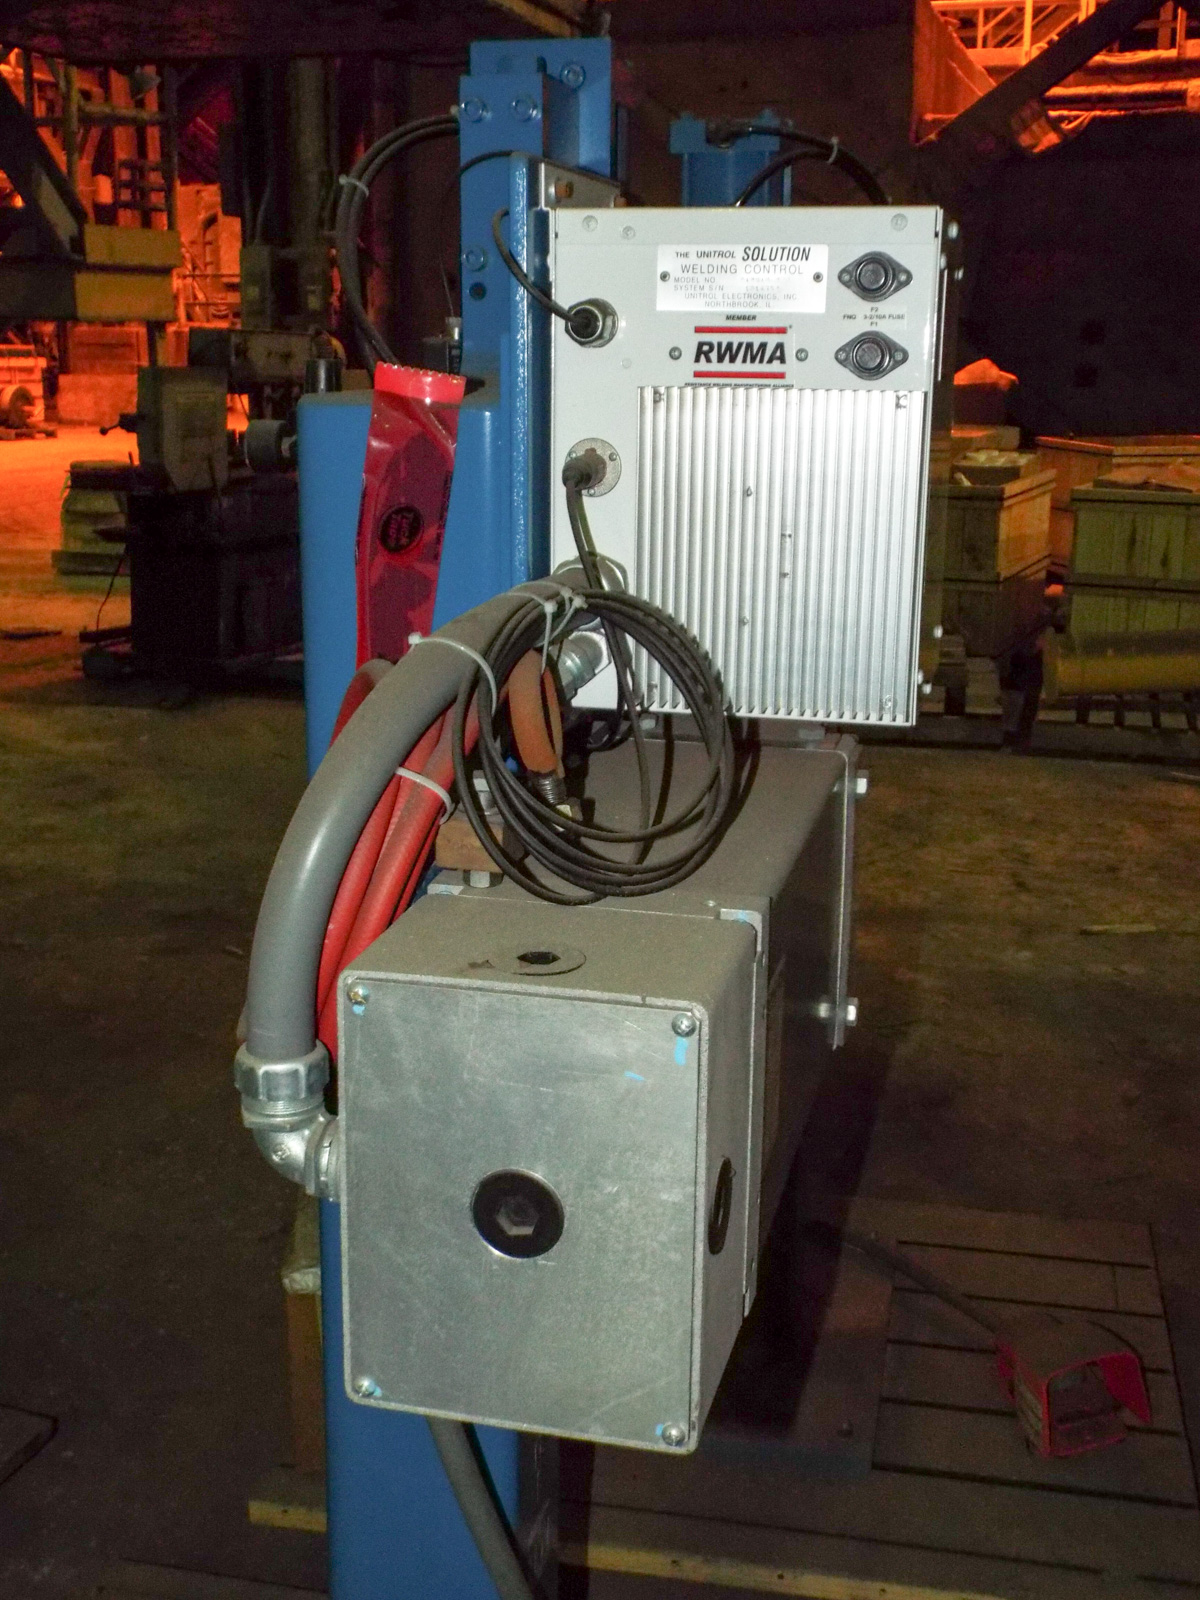 "TAYLOR WINFIELD NV-1 SPOT WELDERS WITH UNITROL SOLUTION DIGITAL CONTROL, 20 KVA, 575V, 8"" THROAT, 6"" - Image 4 of 5"